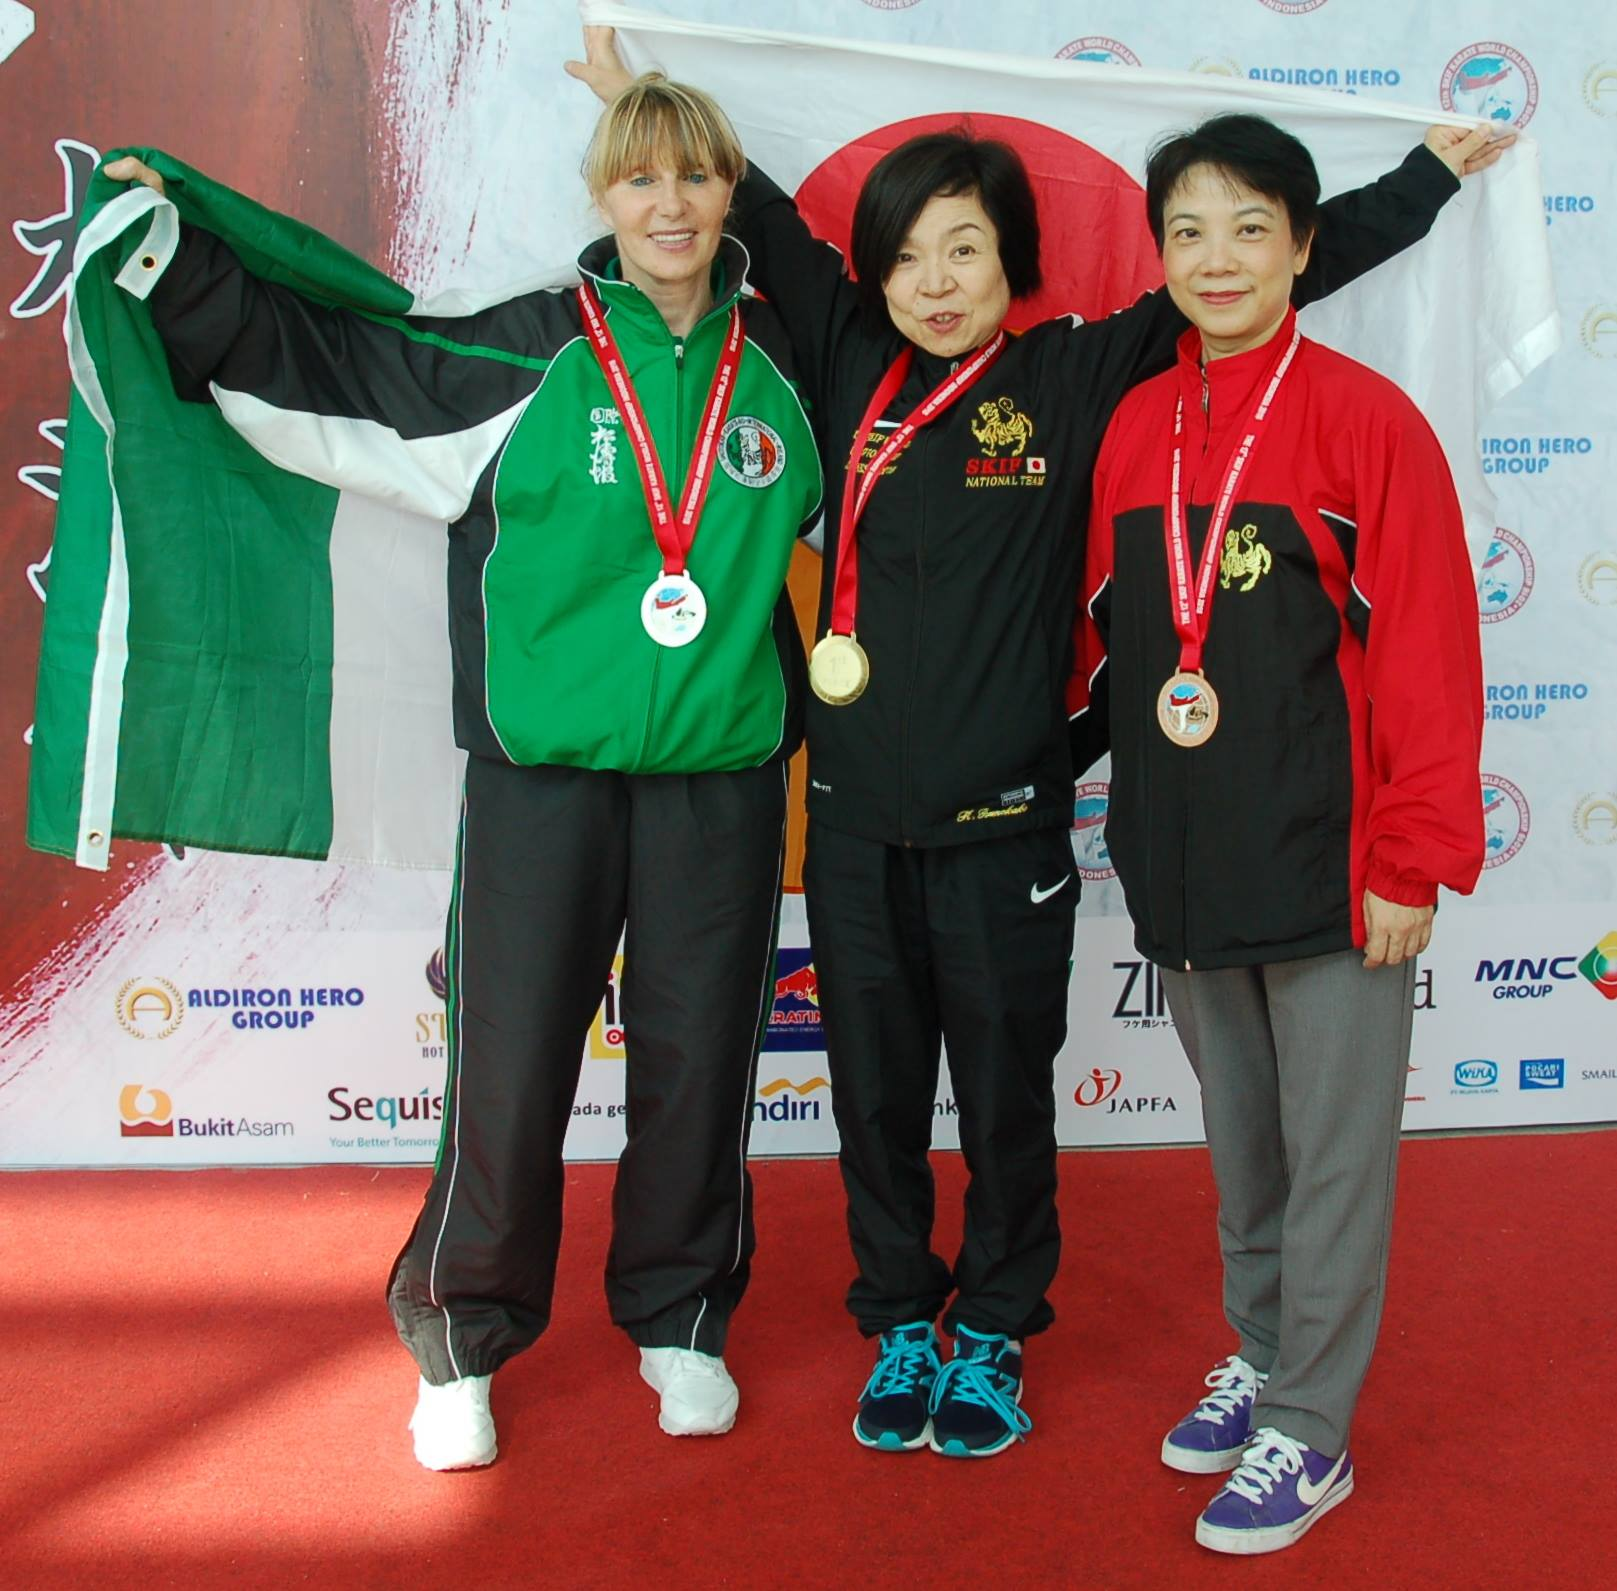 Jacqui O Shea won Silver in Kata at the 12th SKIF World Championships in Jakarta Indonesia in August 2016